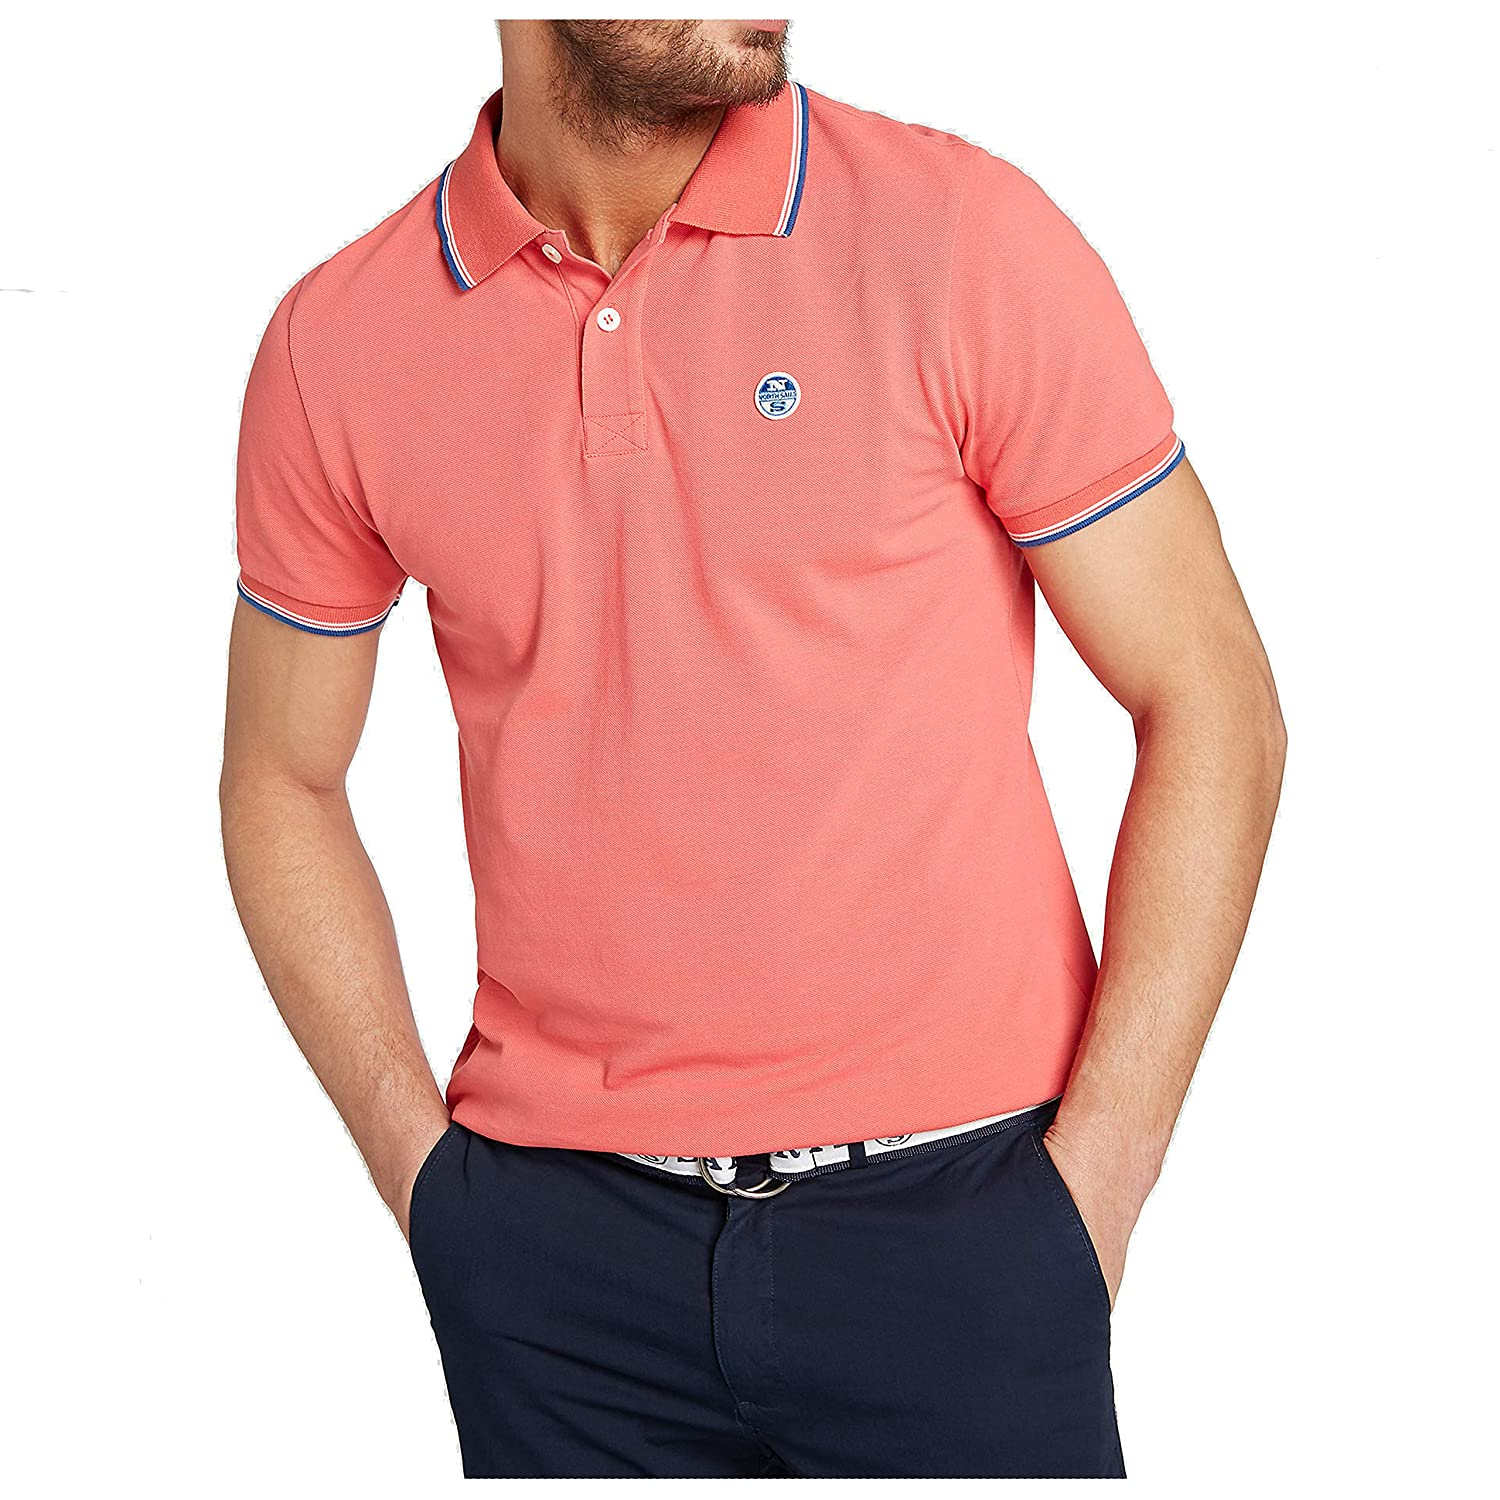 North Sails Polo UOMO 692133 Primavera/Estate: Amazon.es: Ropa y ...